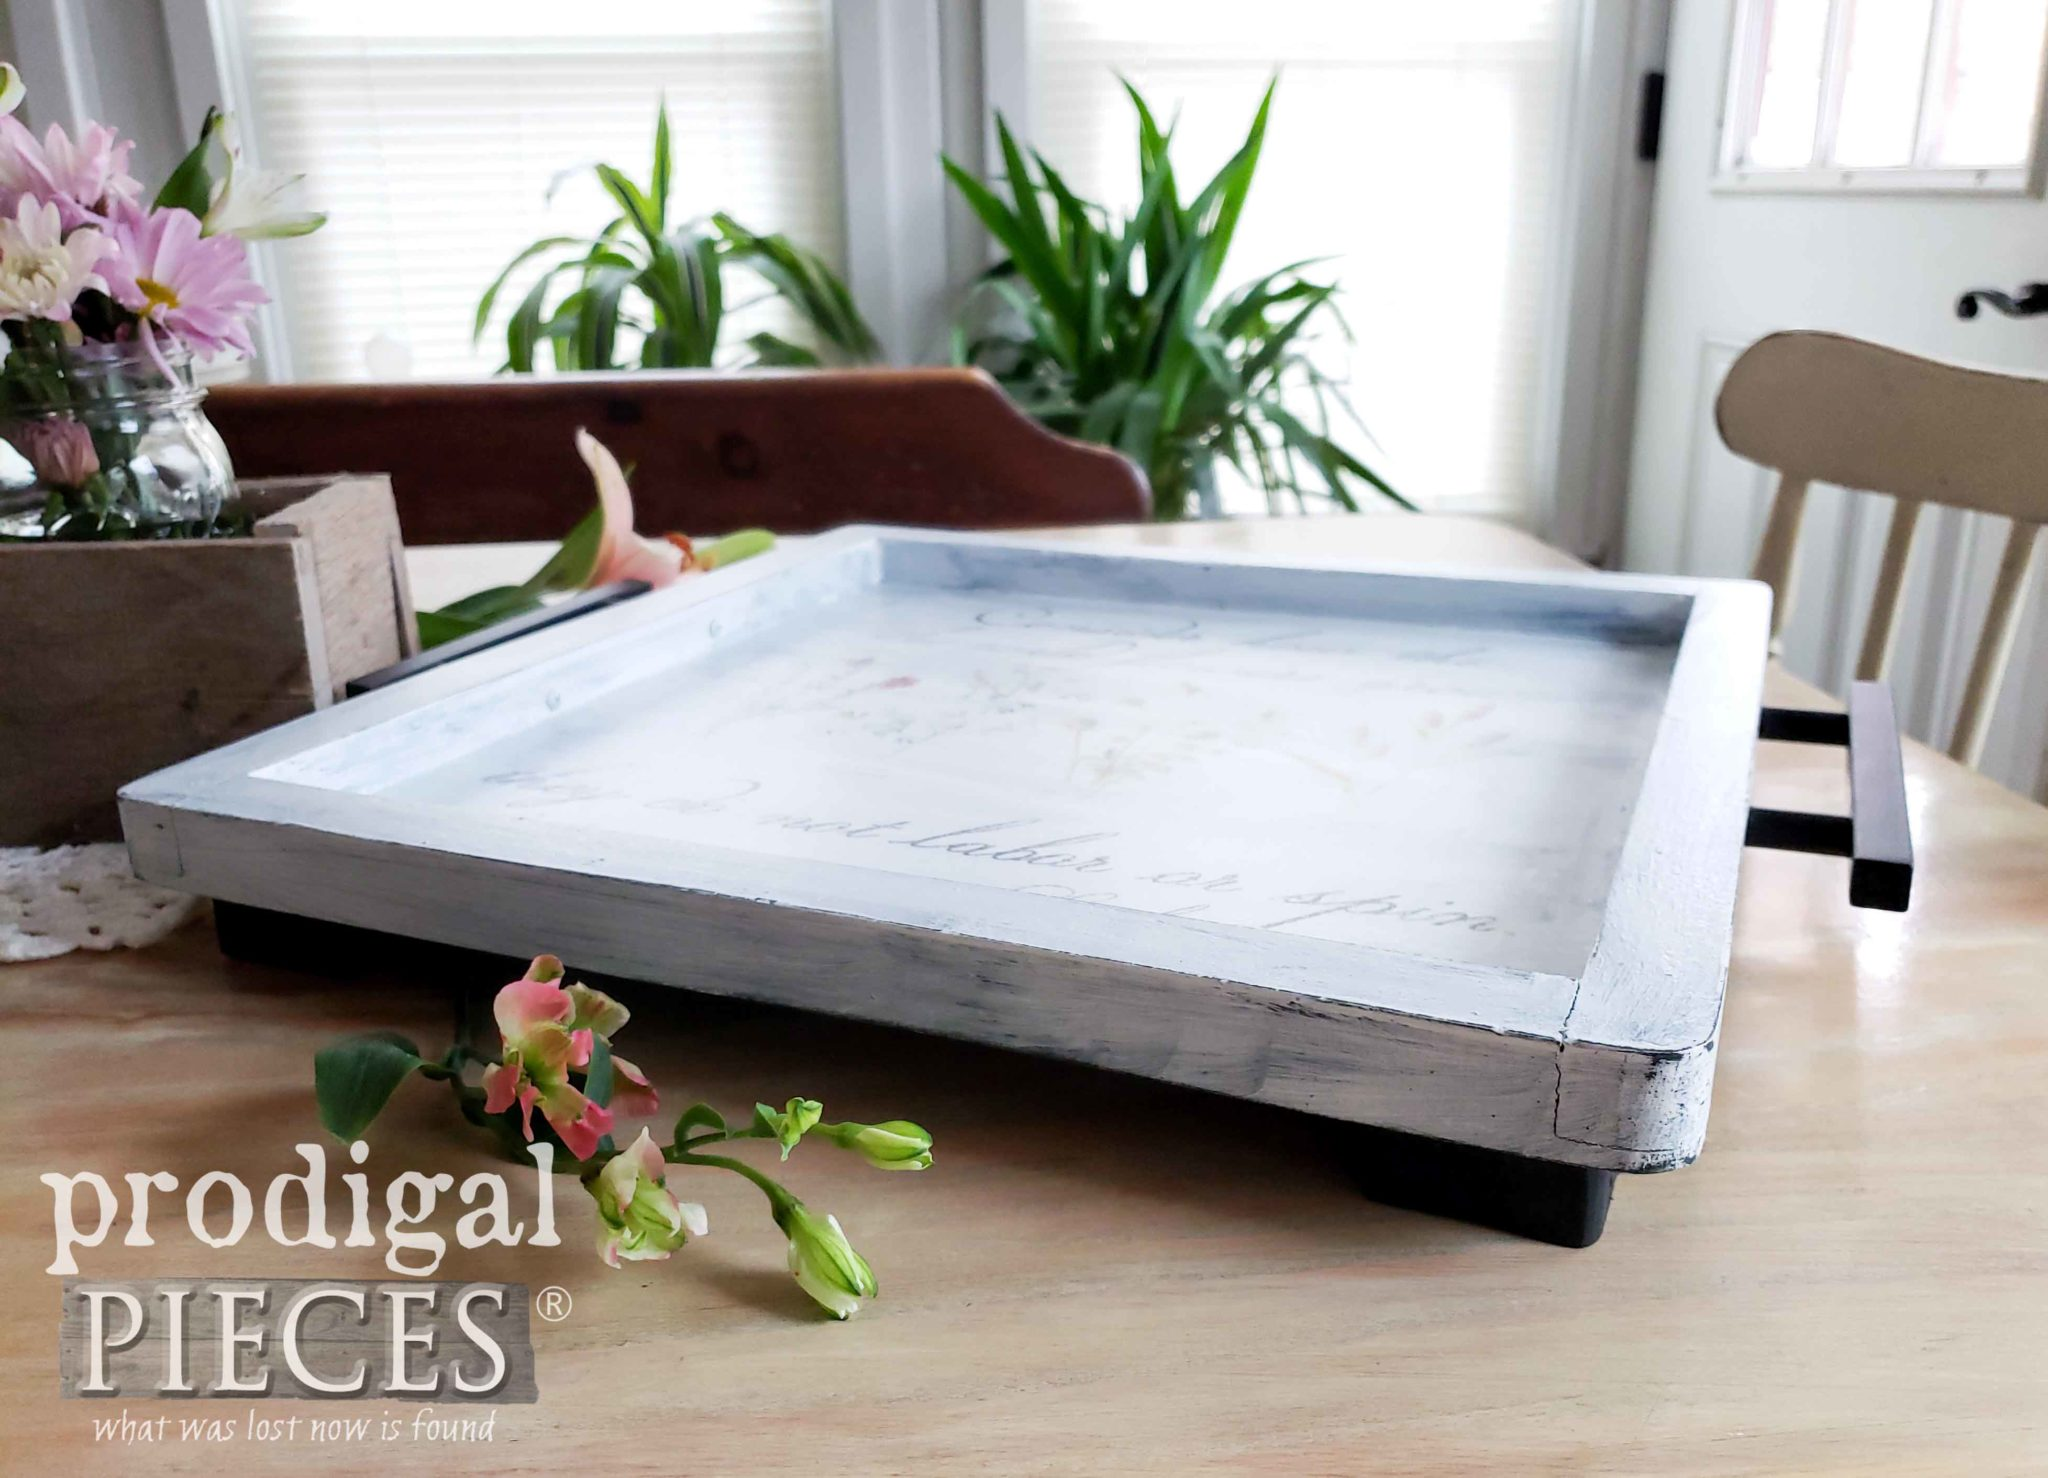 Footed Serving Tray with Botanical Print Design by Larissa of Prodigal Pieces | prodigalpieces.com #prodigalpieces #diy #handmade #farmhouse #home #homedecor #homedecorideas